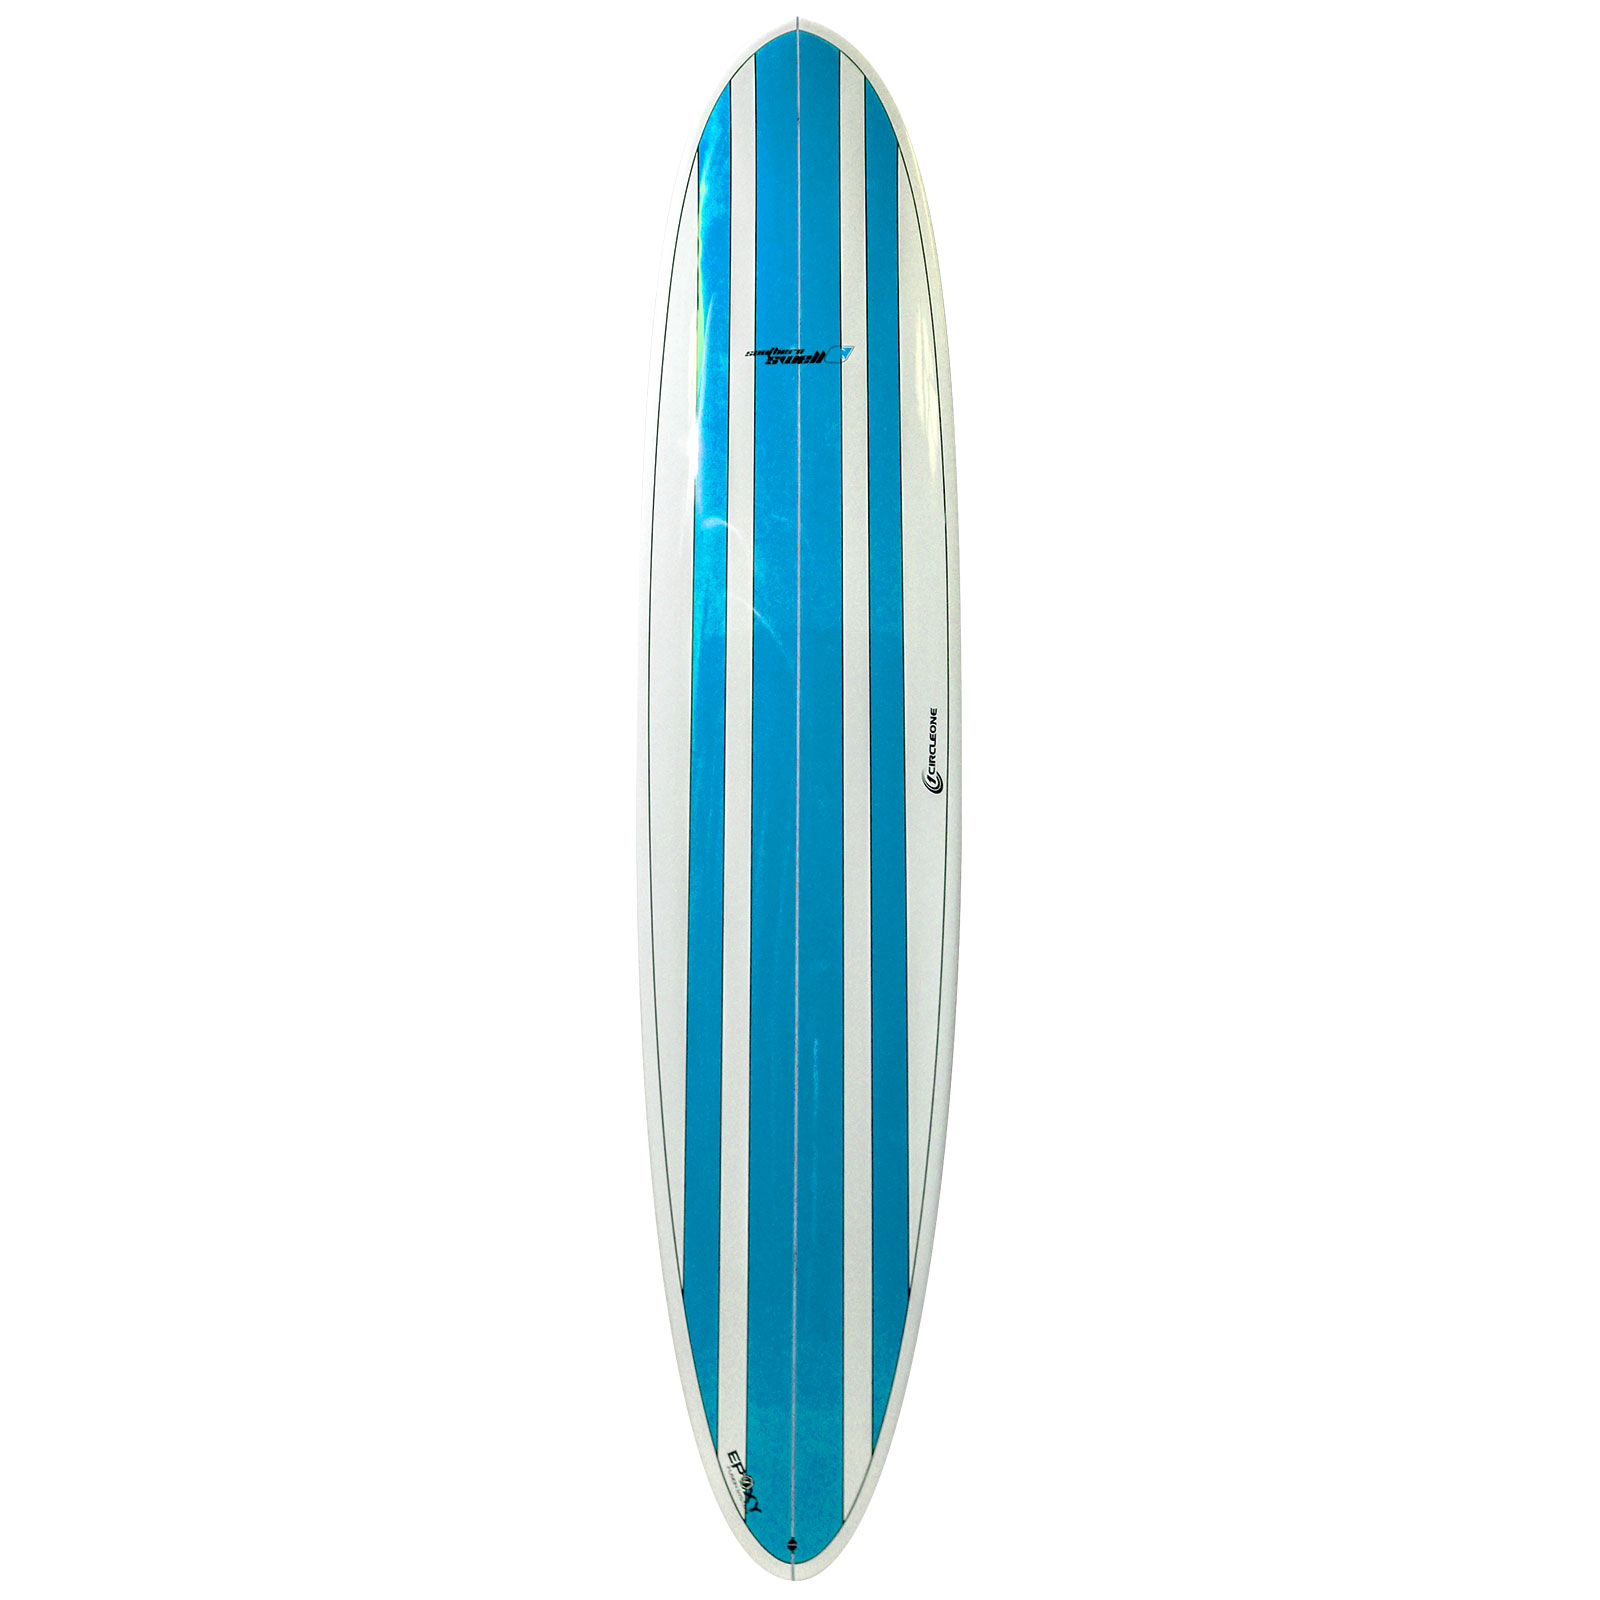 9ft Circle One Southern Swell Series Round Tail Longboard Surfboard - Gloss Finish